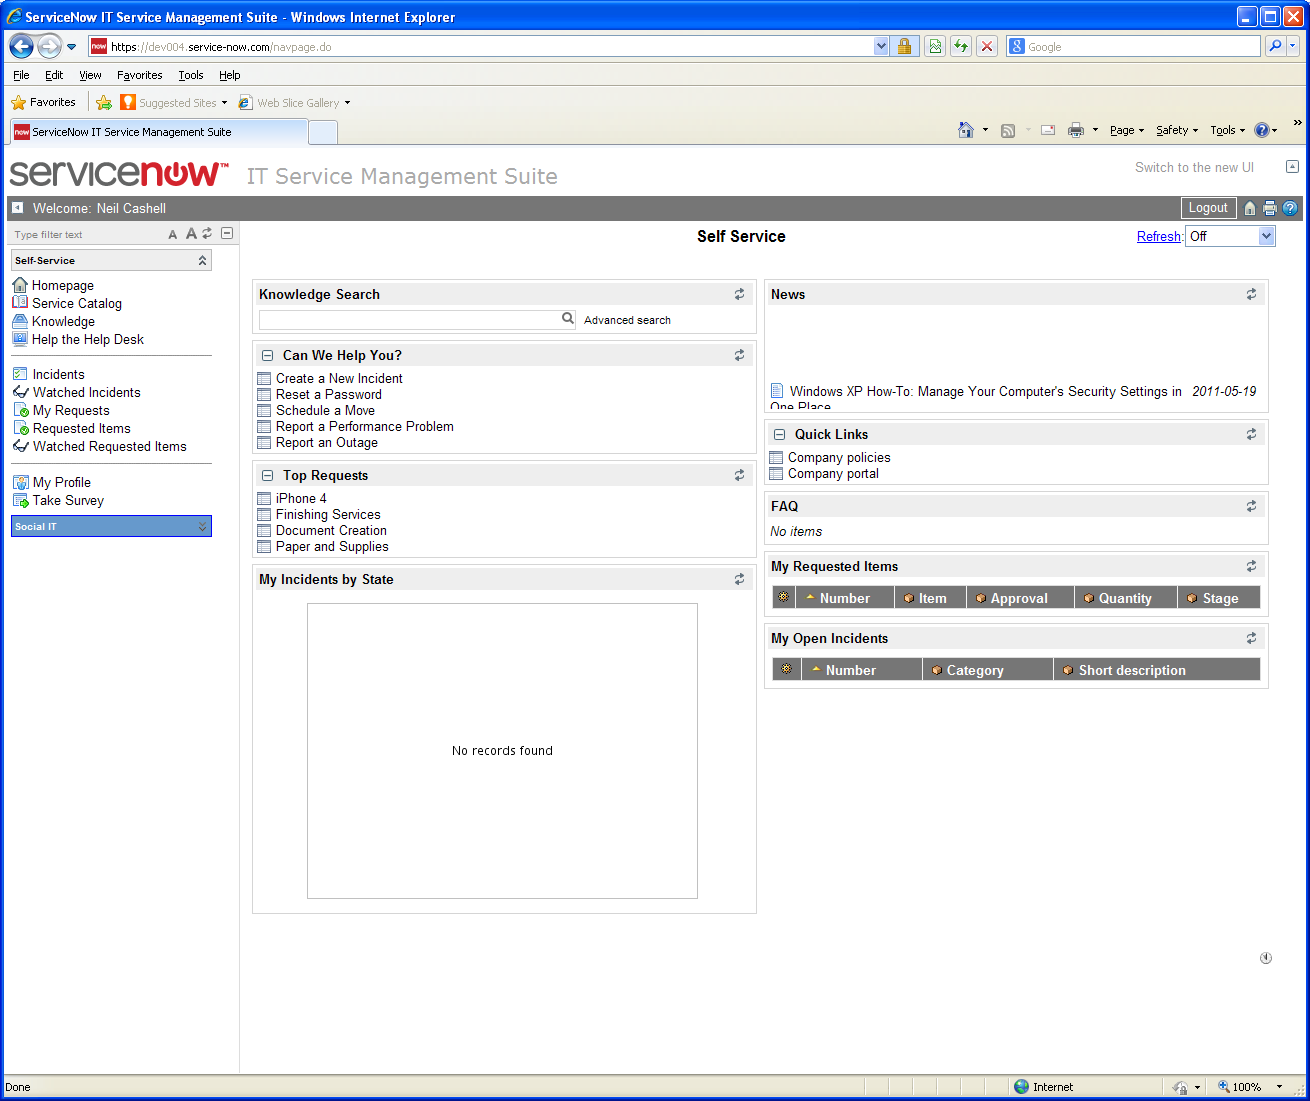 How to Integrate NetIQ Access Manager with ServiceNow IT Service